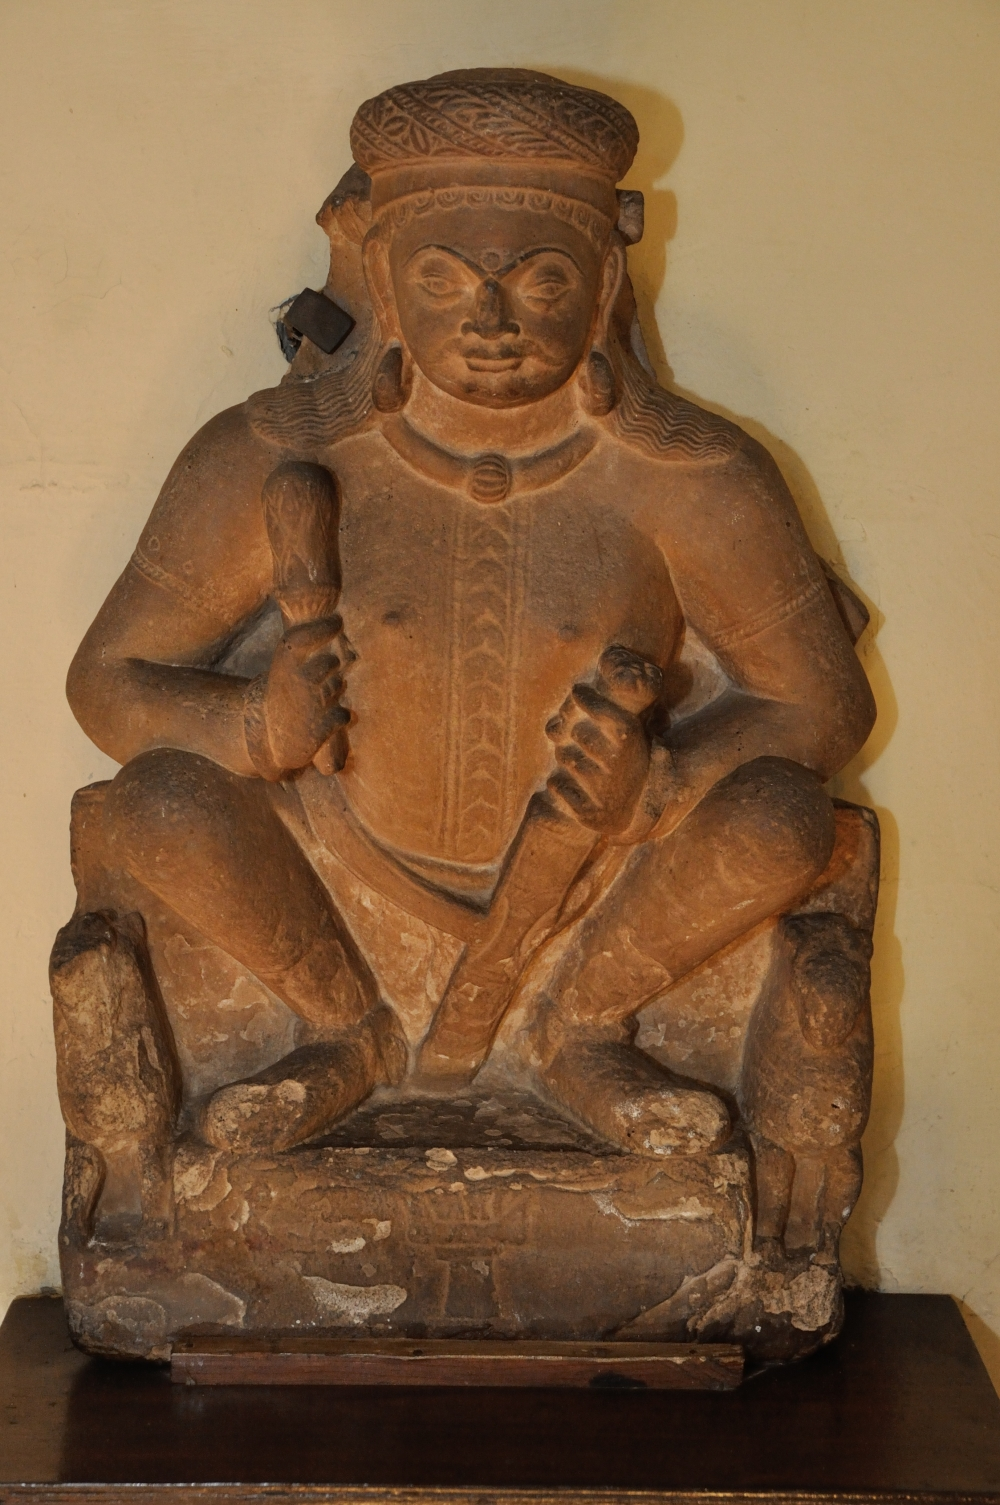 Surya_-_Kushan_Period_-_Kankali_Mound_-_ACCN_12-269_-_Government_Museum_-_Mathura_2013-02-23_5839